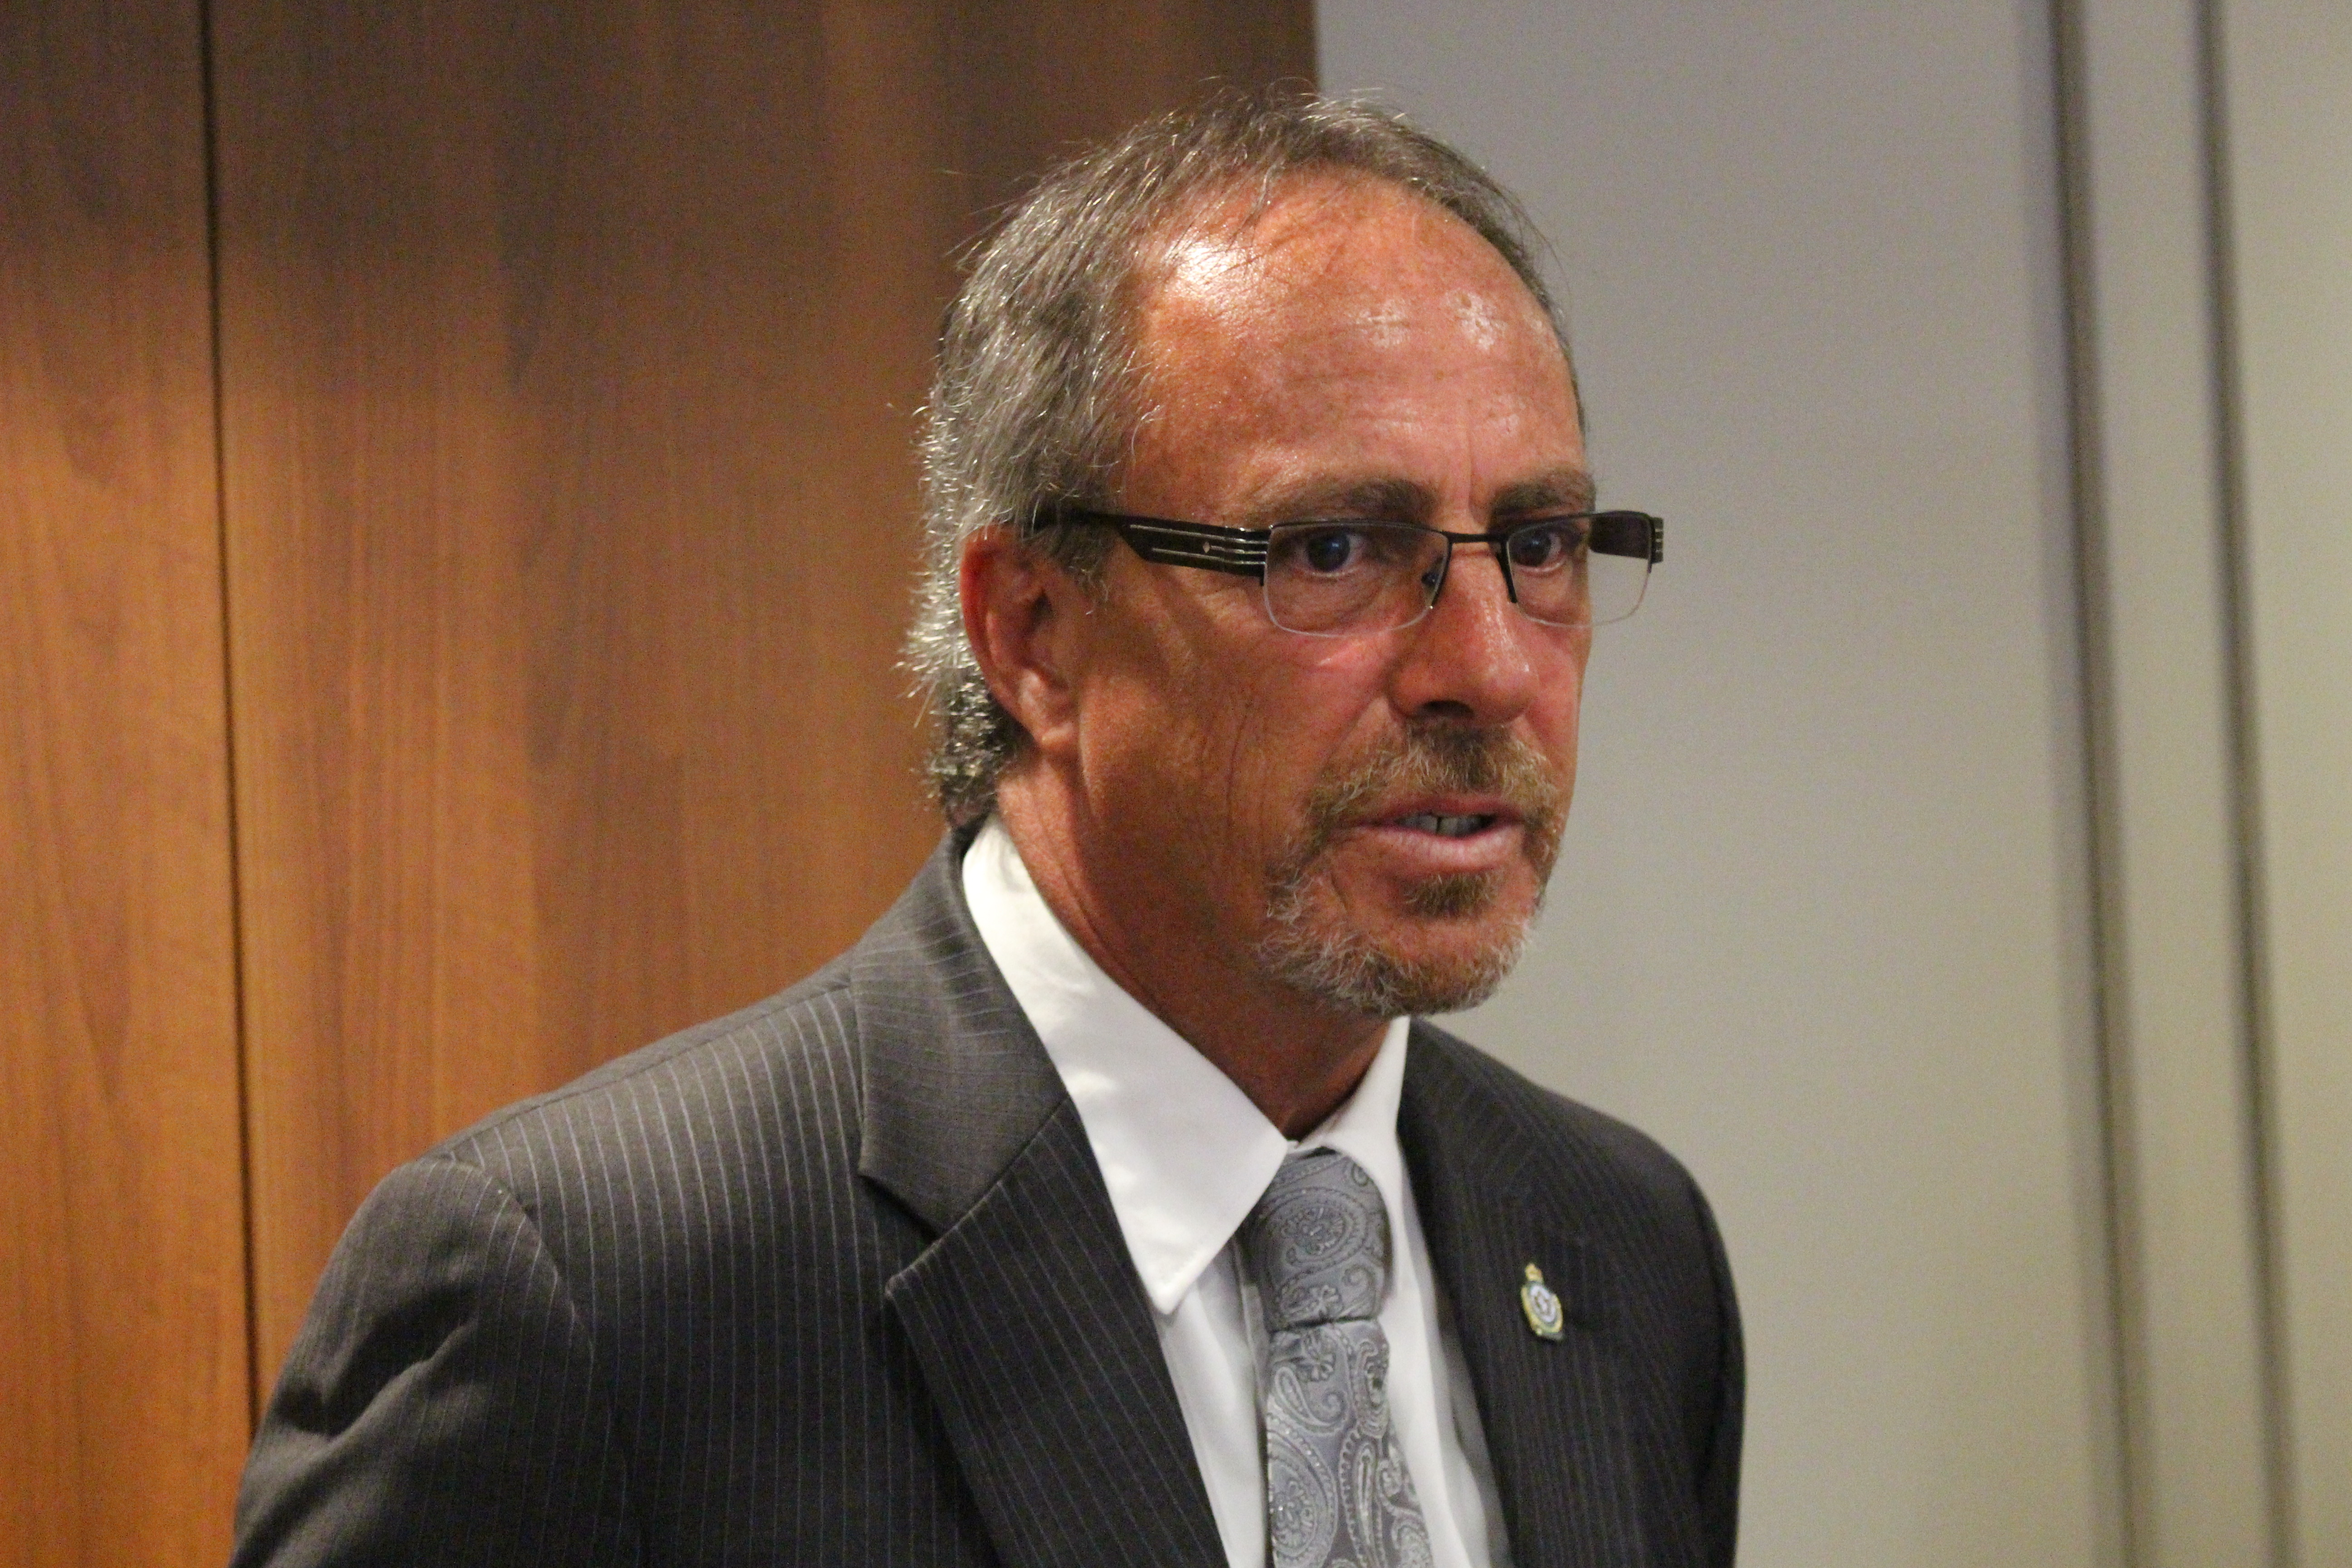 Chatham-Kent Mayor Randy Hope at police headquarters, July 23, 2015. (Photo by Mike Vlasveld)